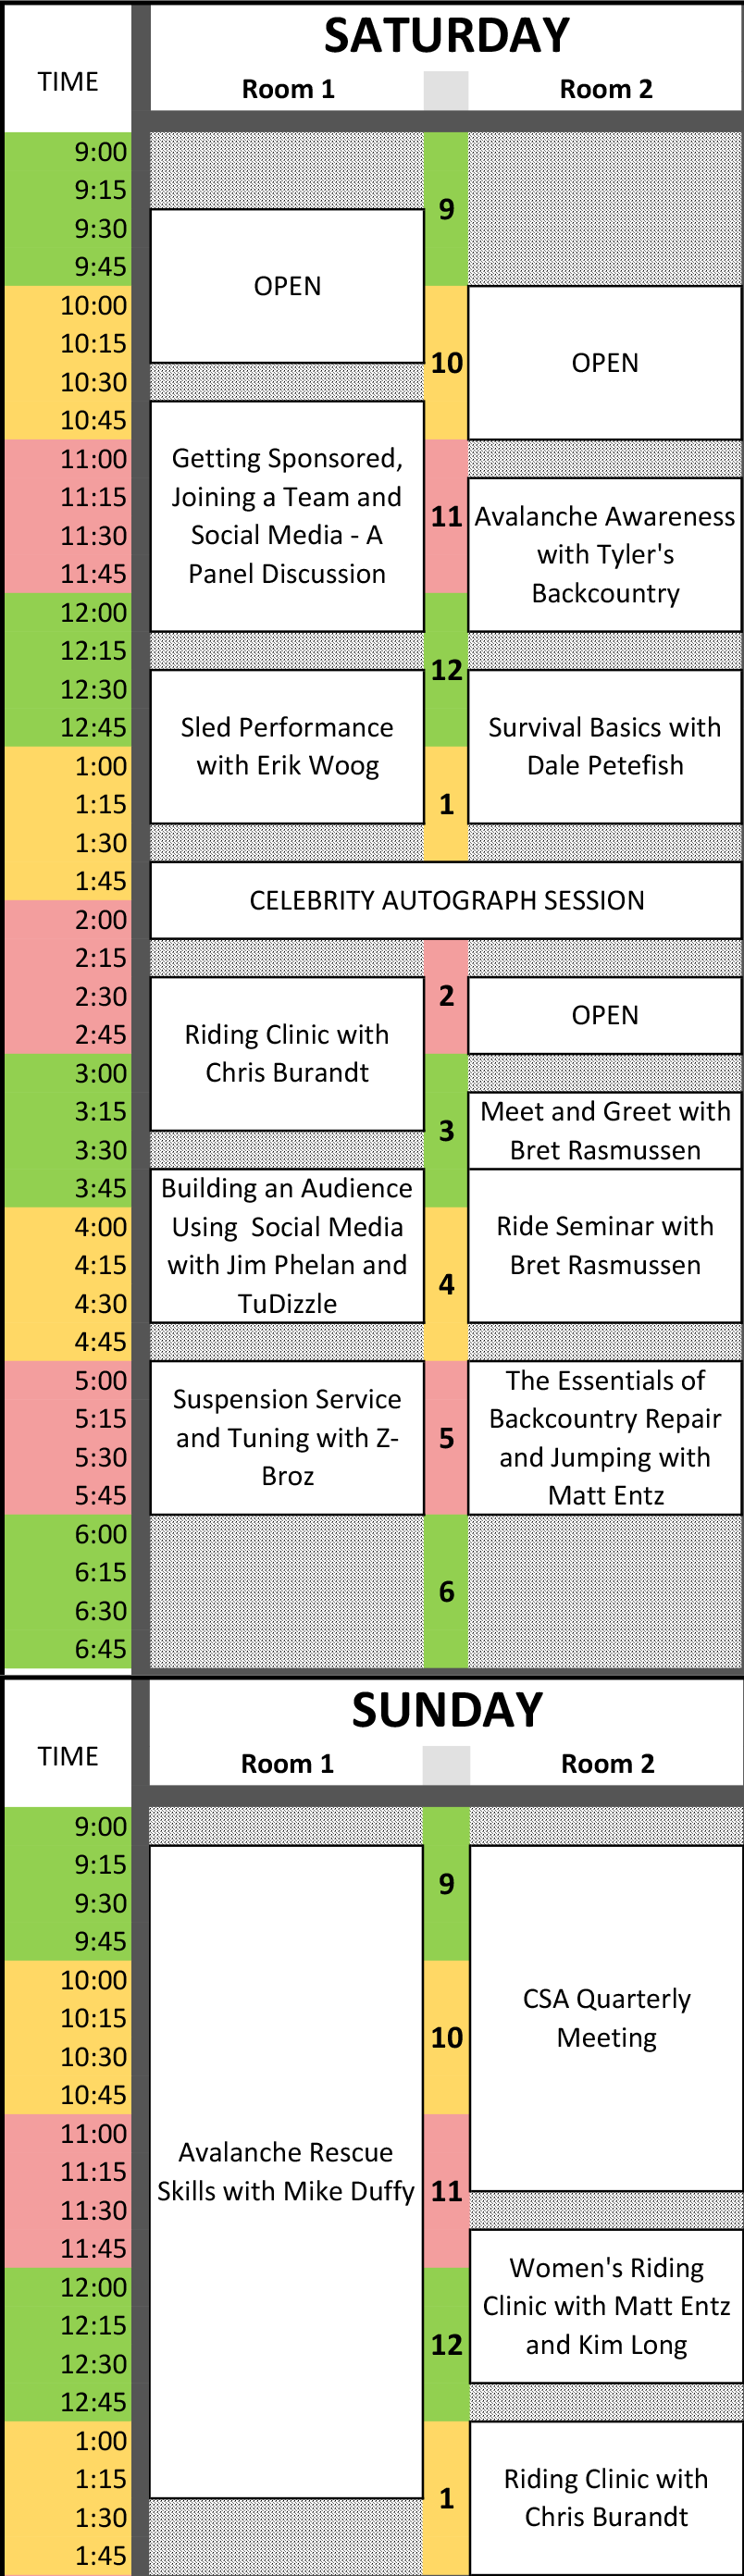 Expo Schedule - 2015 Denver Expo